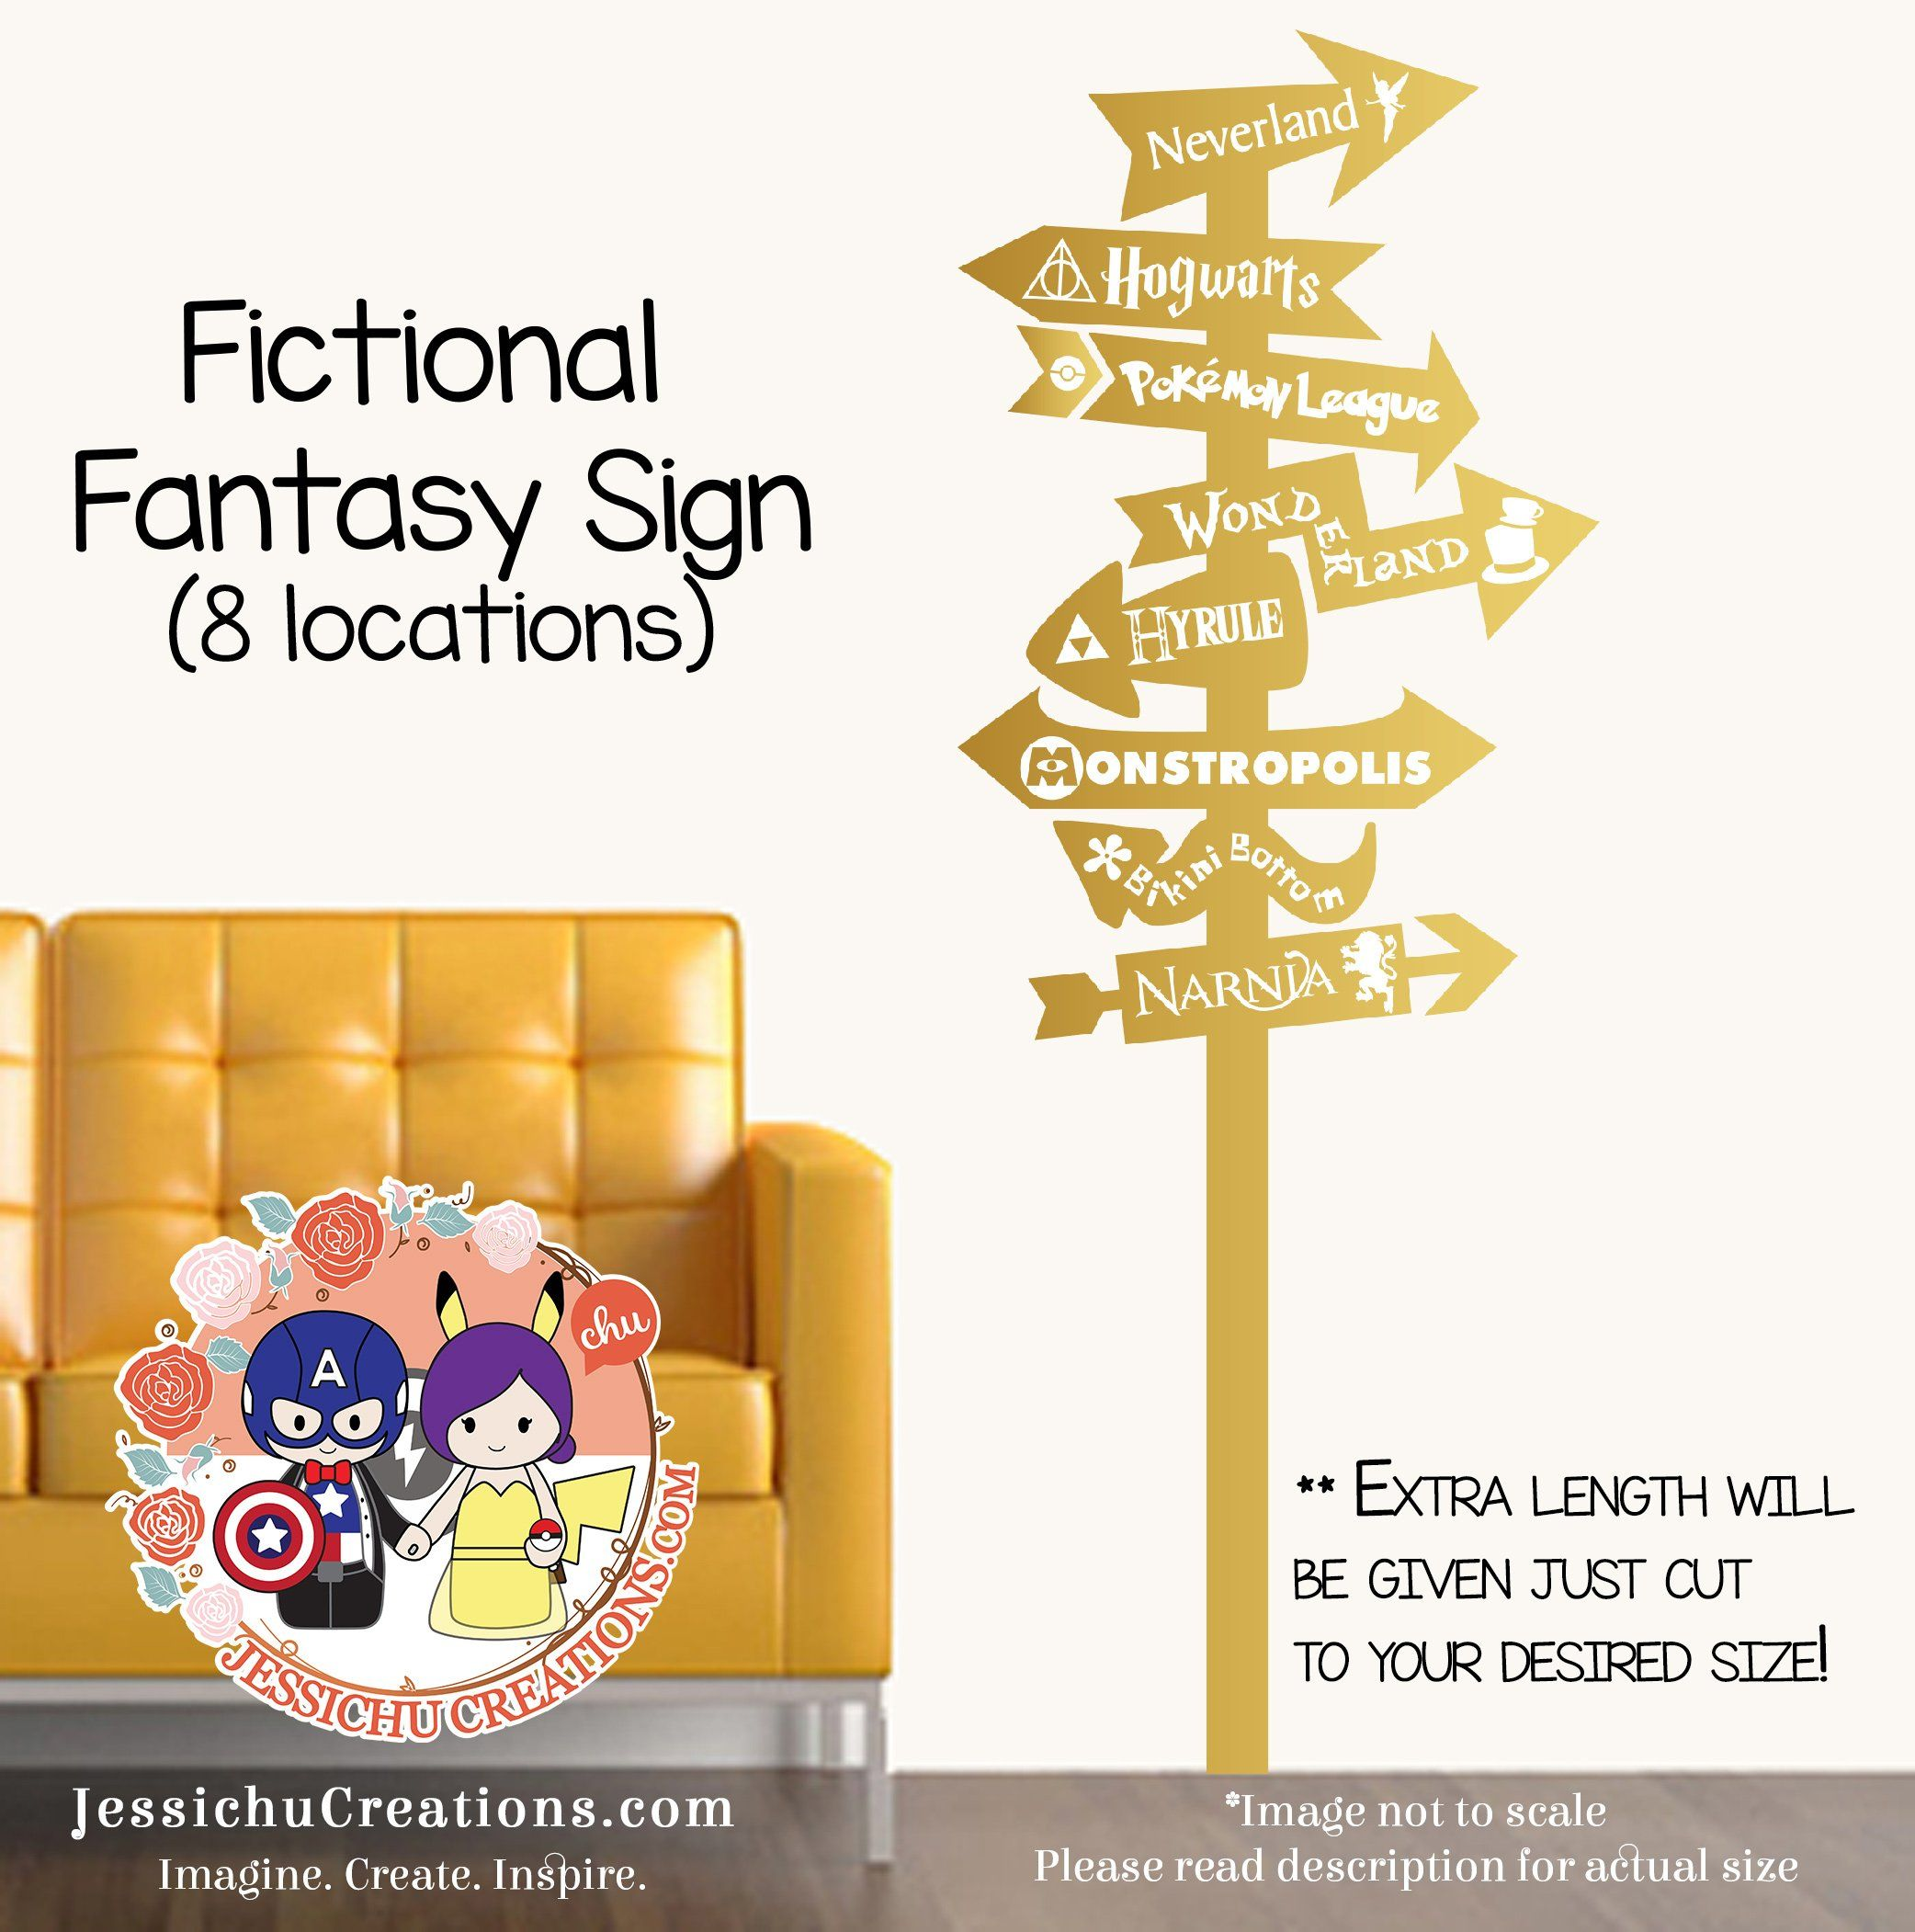 Fictional Fantasy World Sign Post Vinyl Wall Decal Sticker